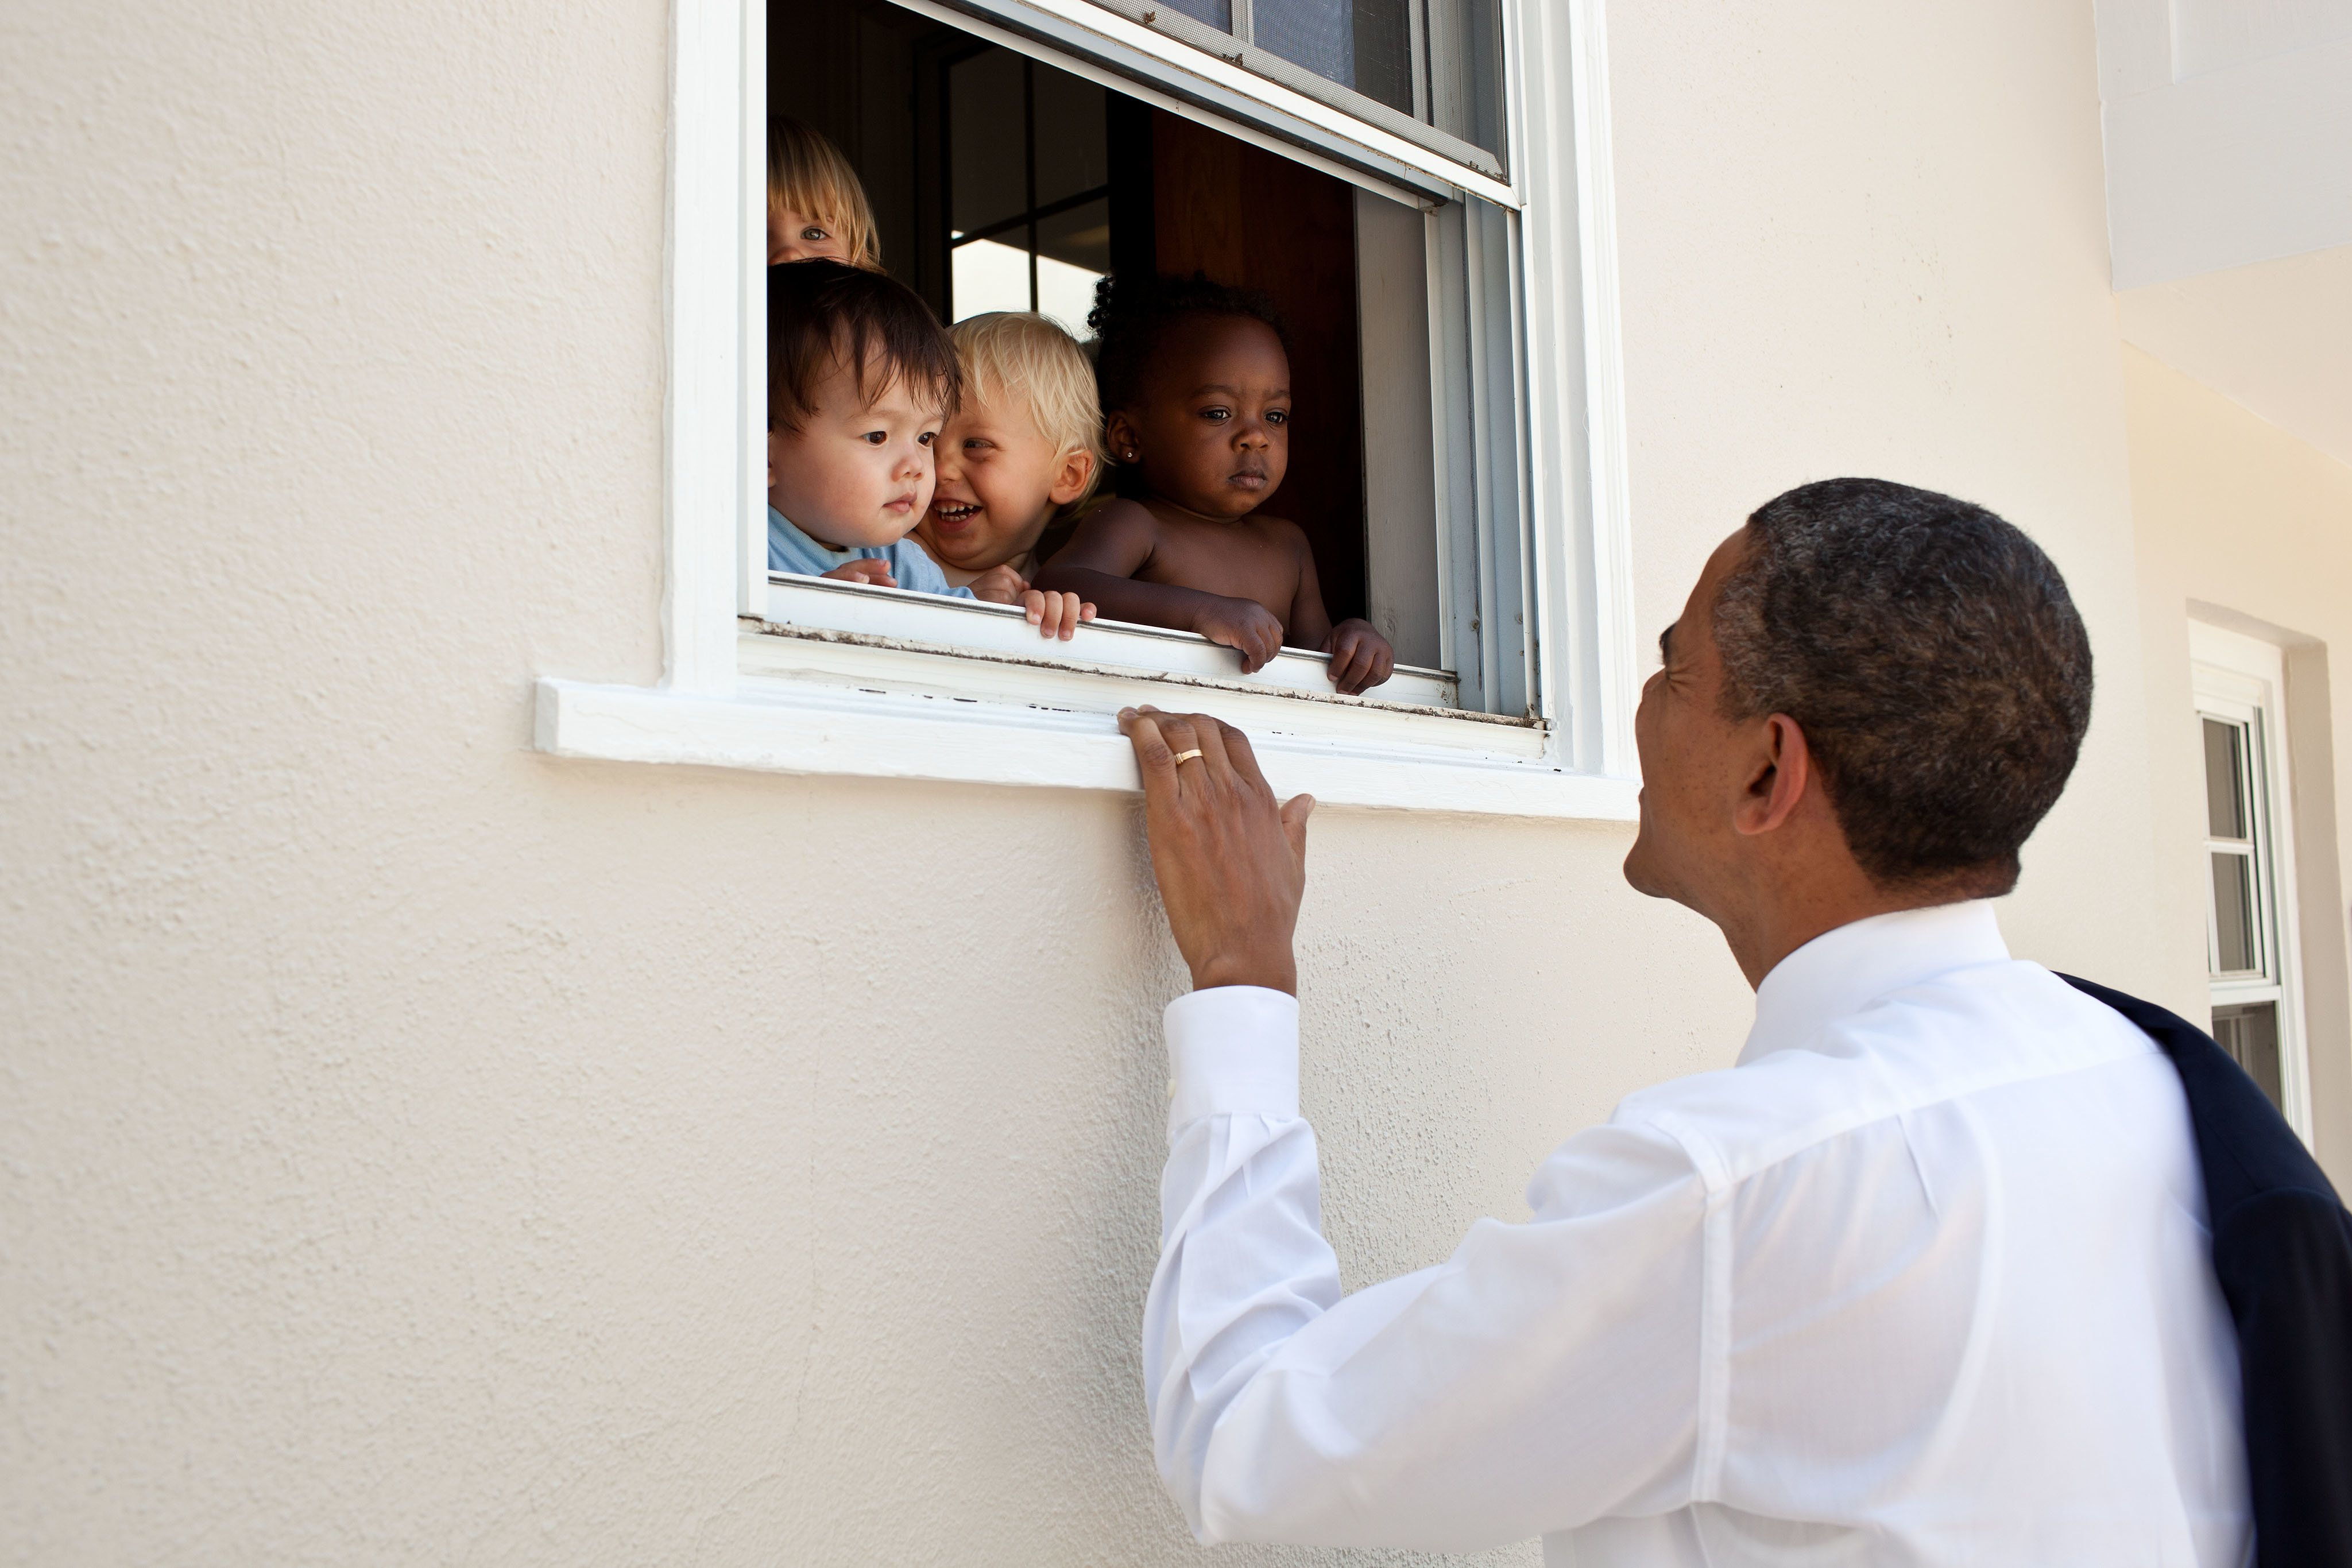 President Barack Obama greets children at a day care facility adjacent to daughter Sasha's school in Bethesda, Md., following her 4th grade closing ceremony, June 9, 2011. (Official White House Photo by Pete Souza)